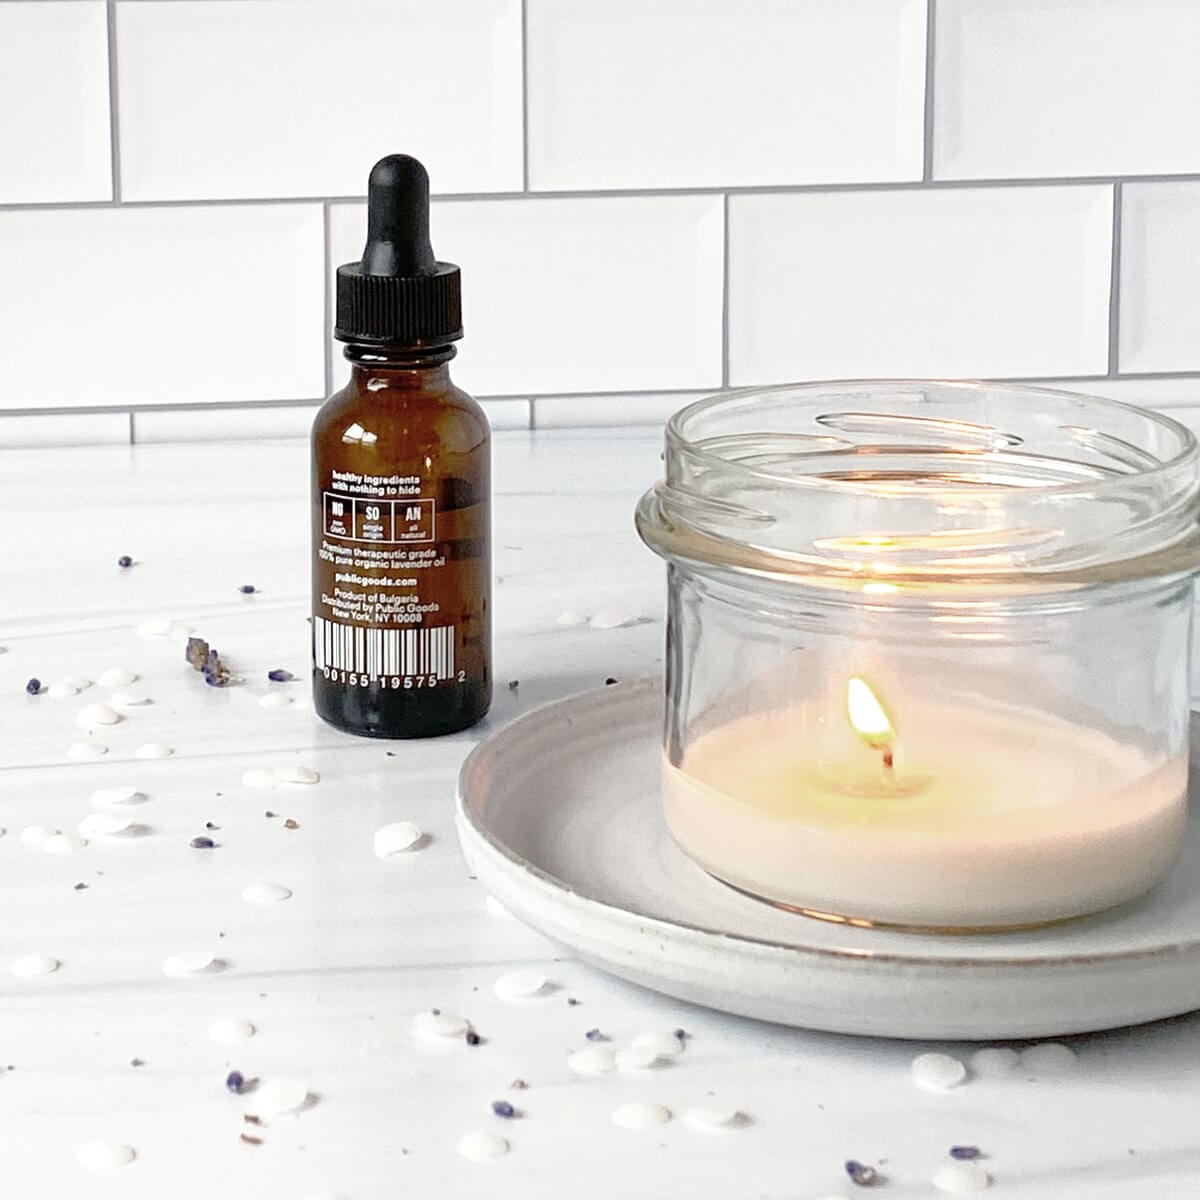 lit candle in a glass jar, bottle of essential oil